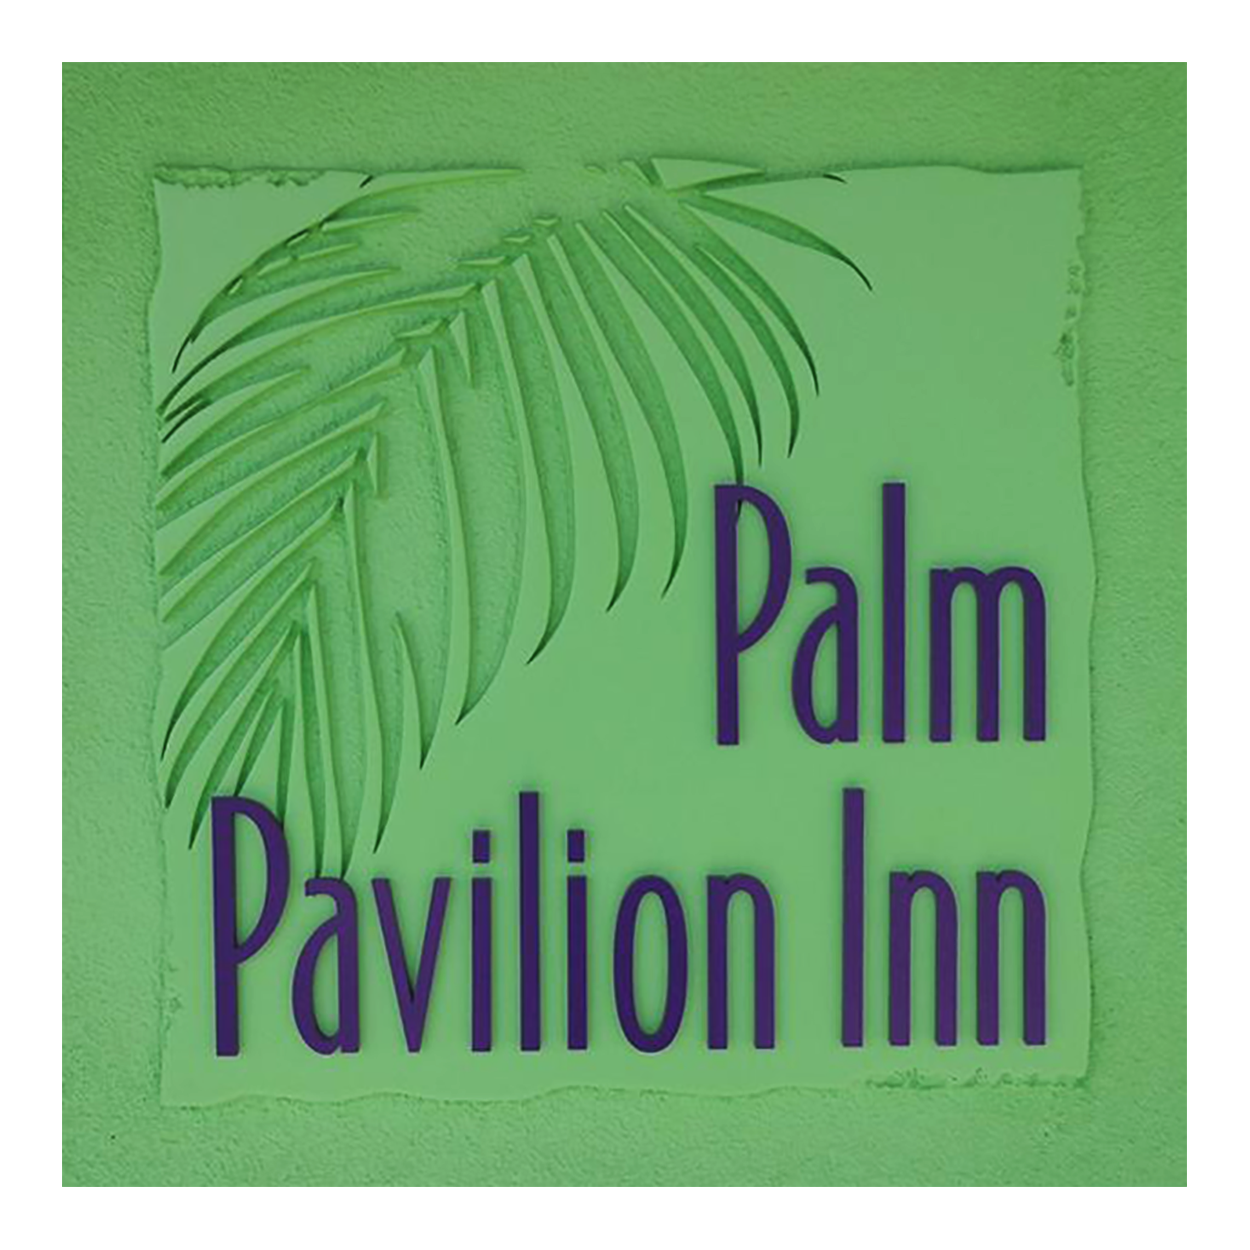 Palm Pavilion Inn